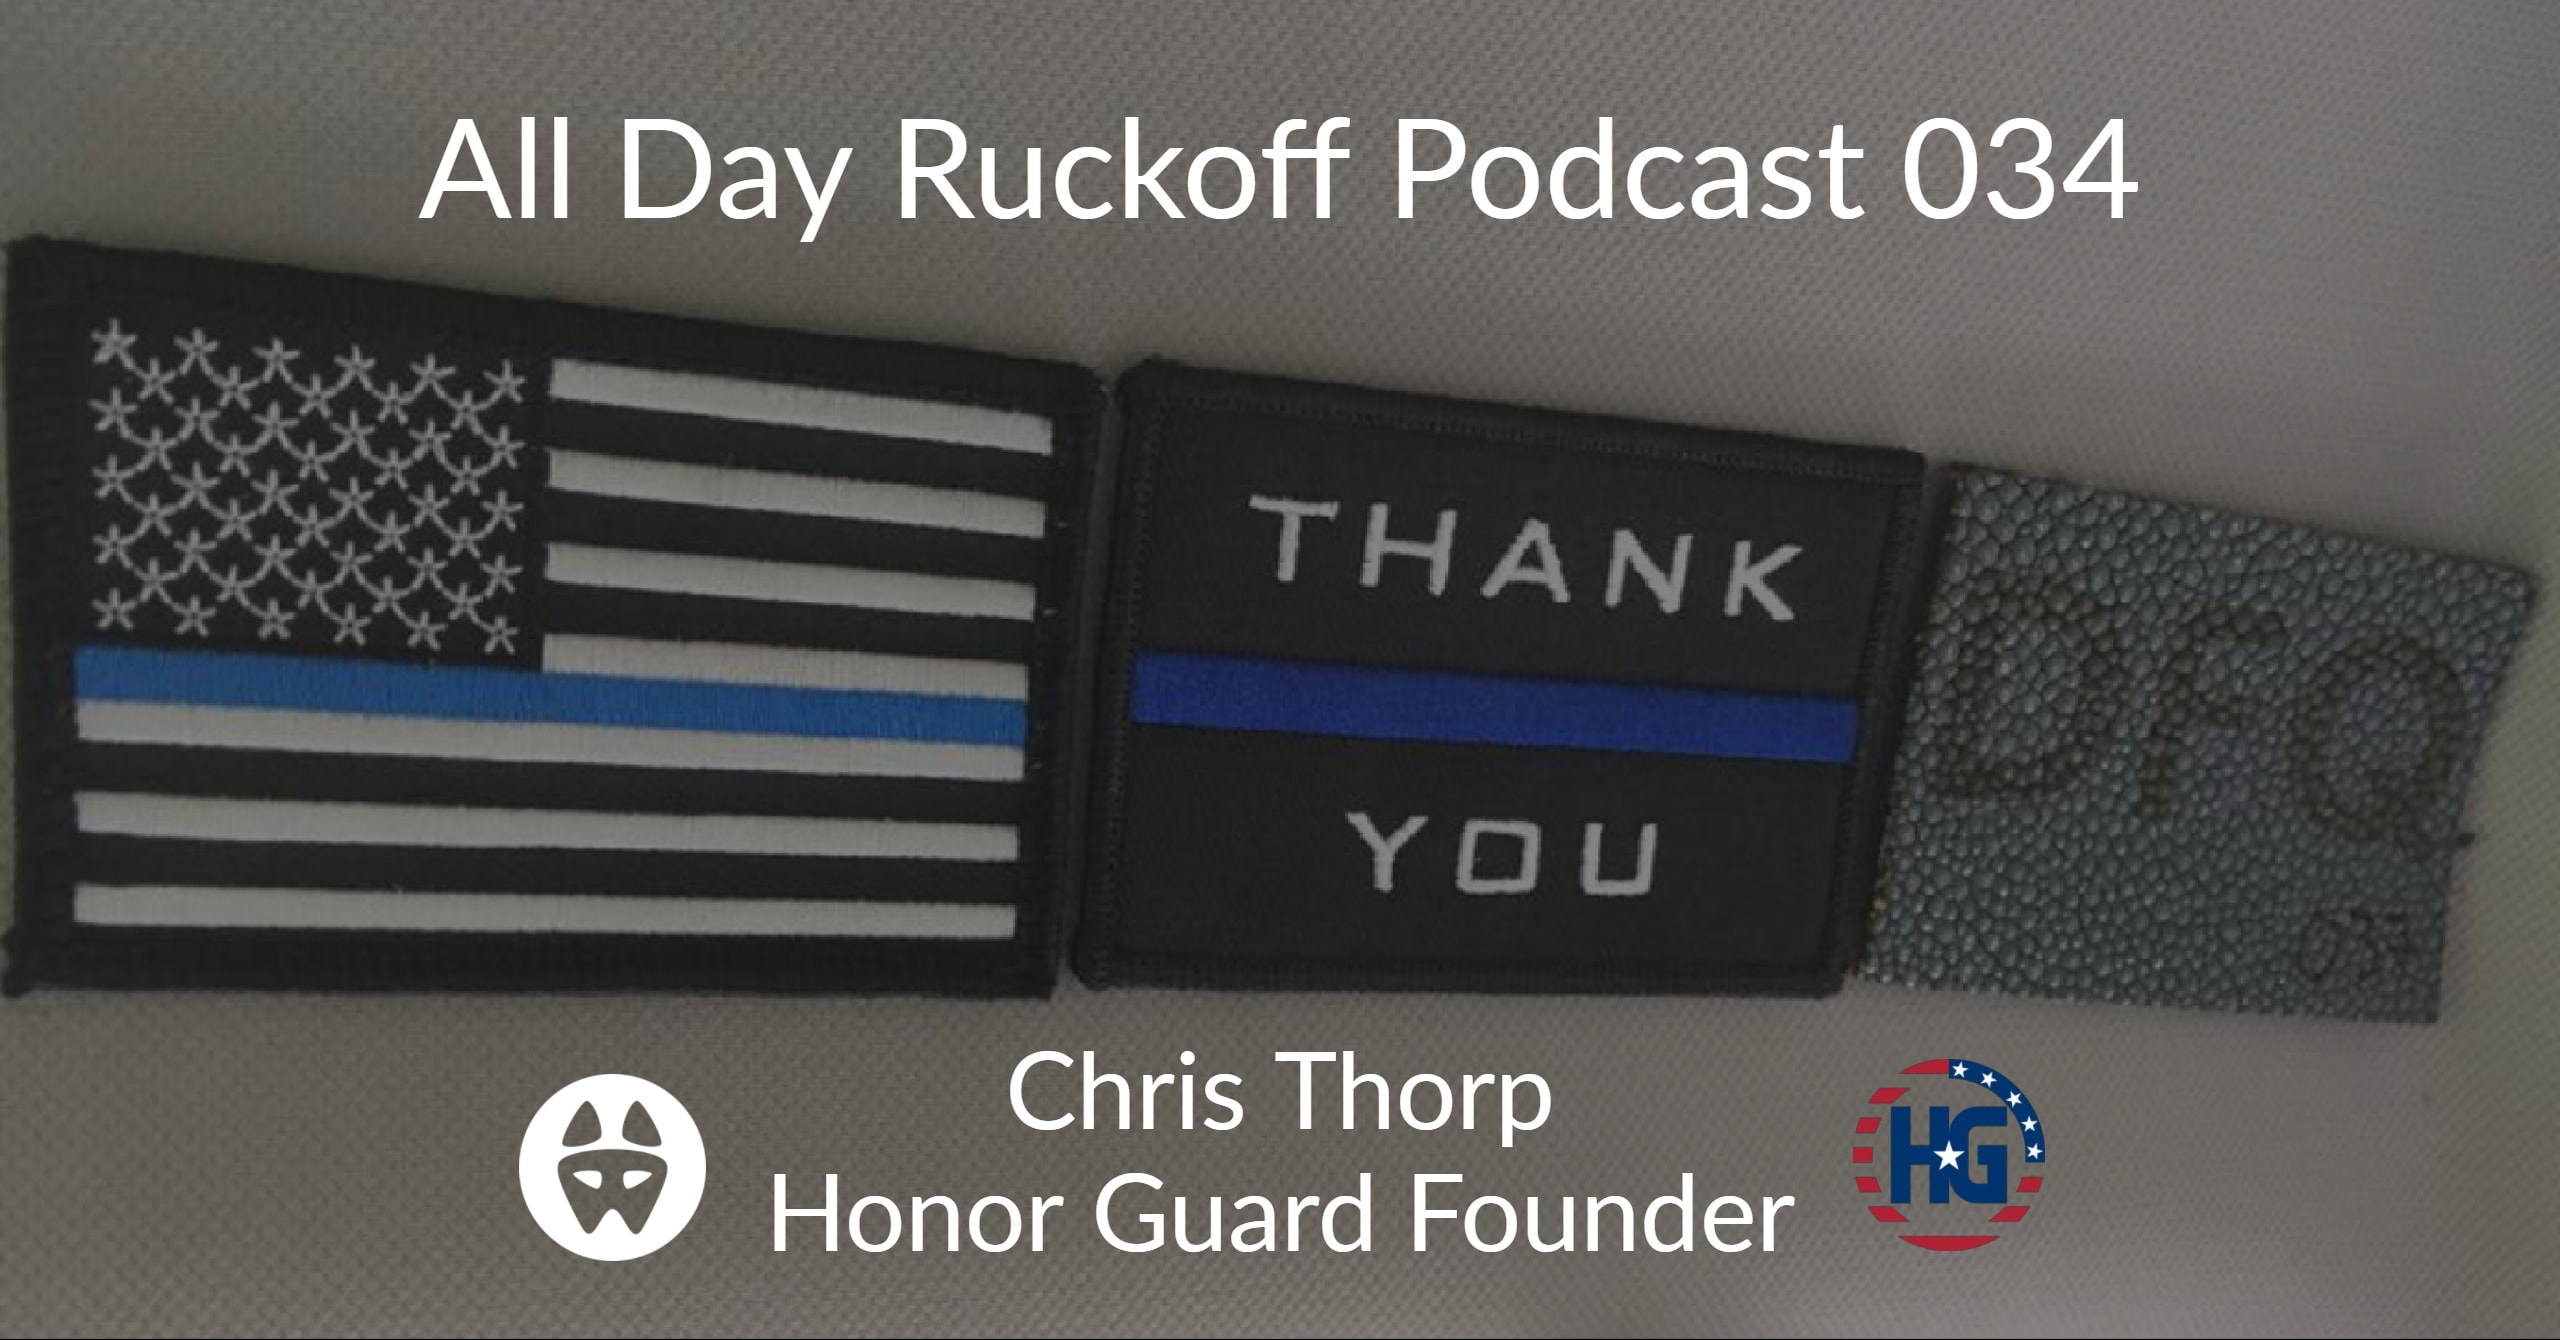 ADR 034: Chris Thorp Interview (Honor Guard Founder) - All